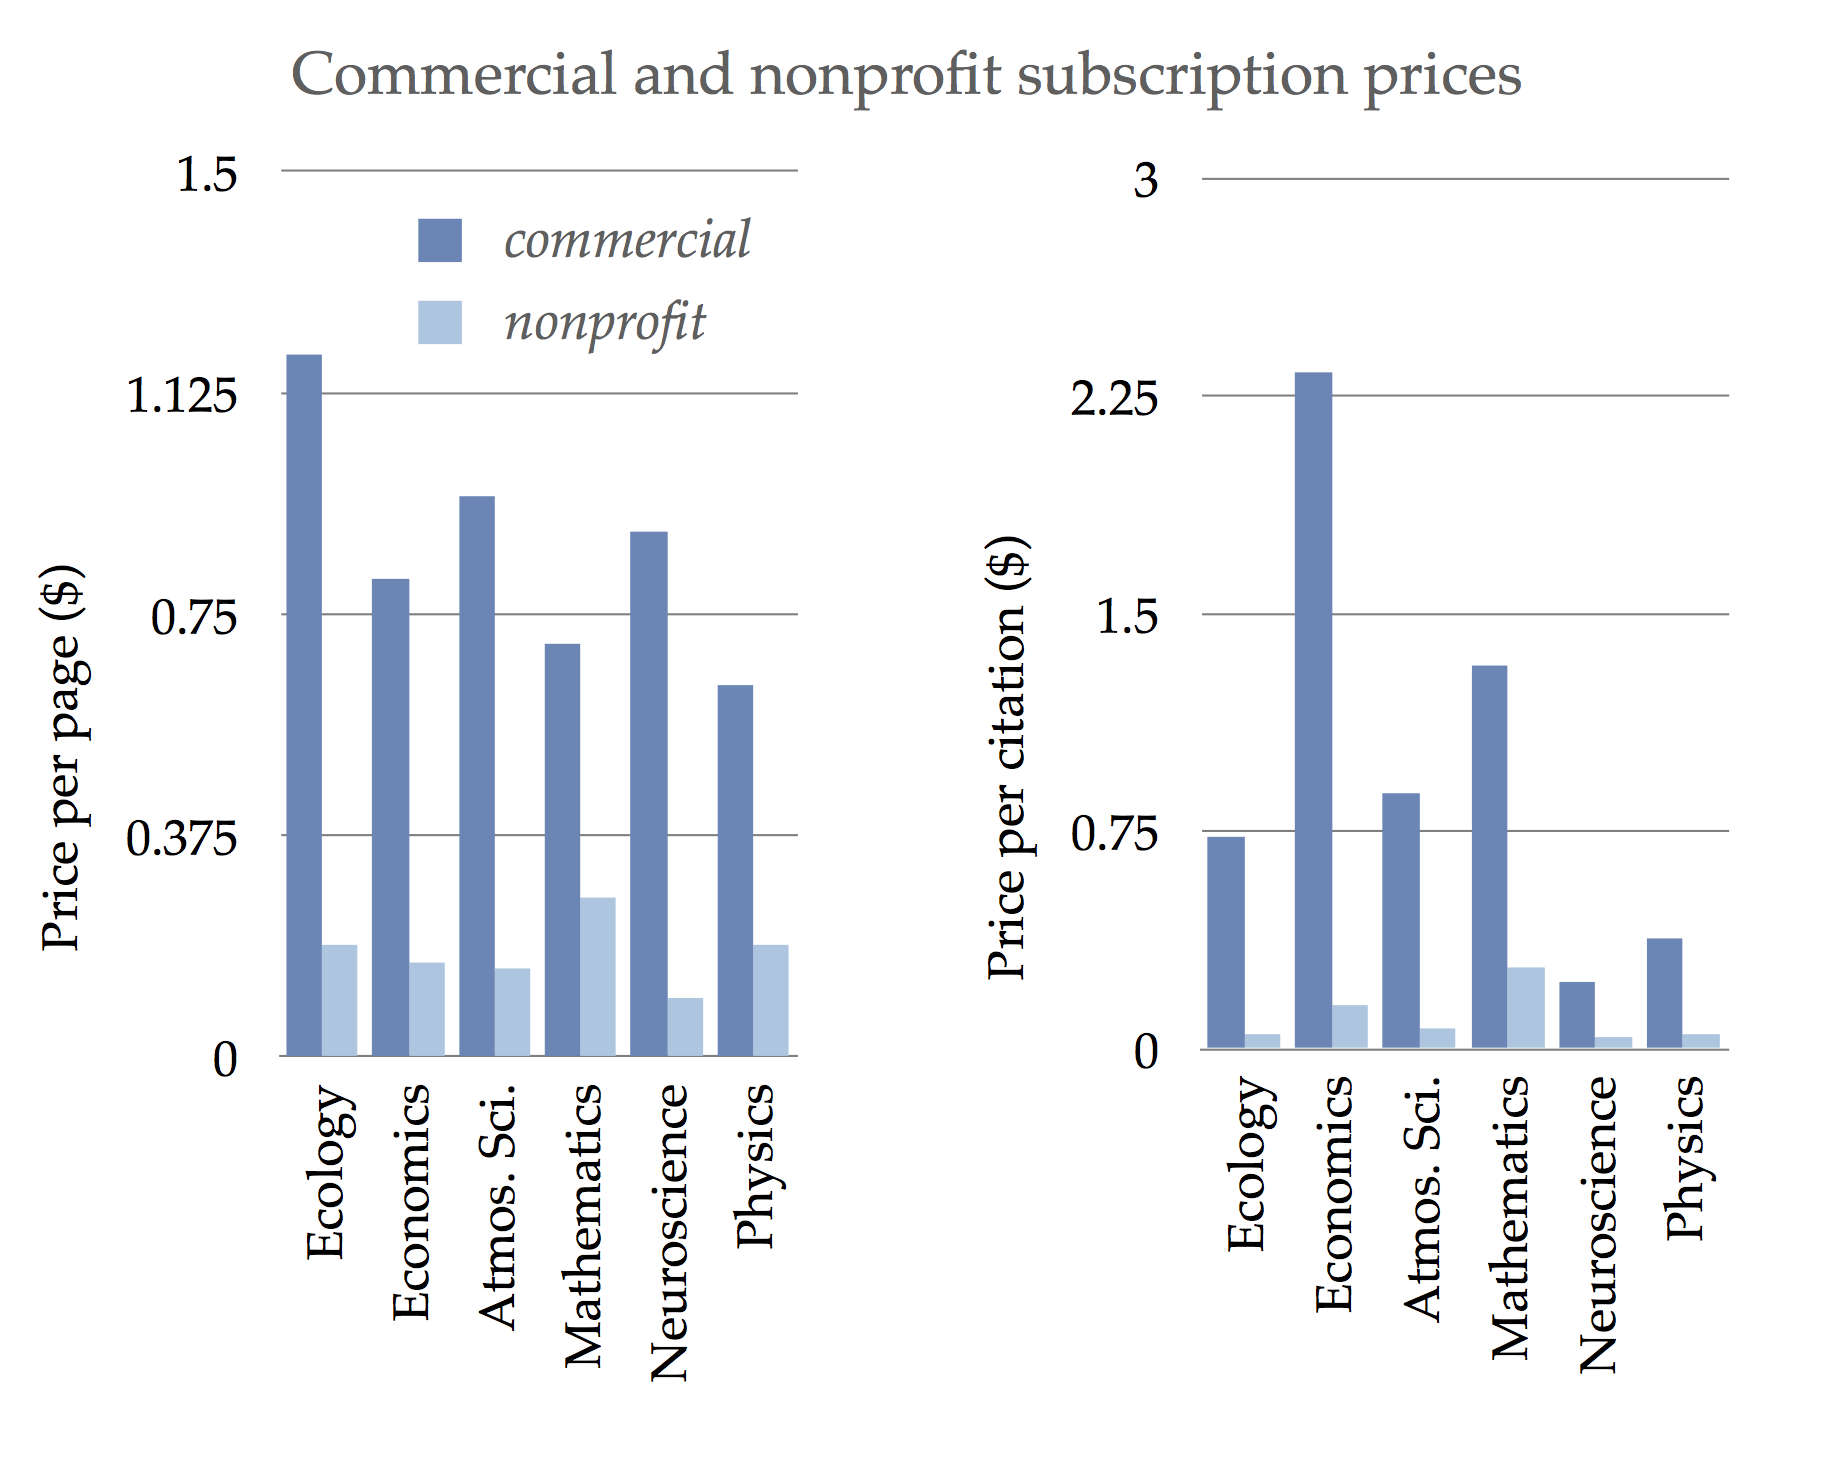 Average journal prices in a range of fields, differentiated by commercial and non-profit publishers. Left is based on prices as dollars per page. Right is based on dollars per citation, to normalize for quality. Data are from Bergstrom and Bergstrom, Journal pricing across disciplines, 2002.